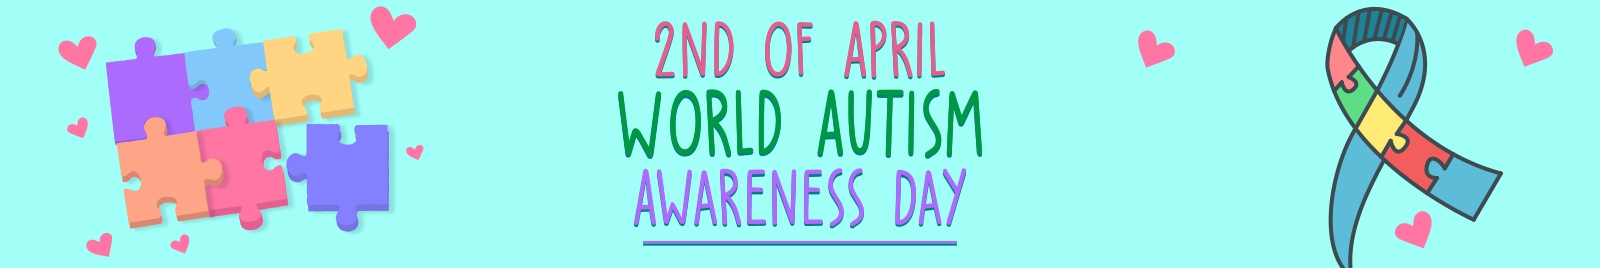 2nd of April- World Autism Awareness Day